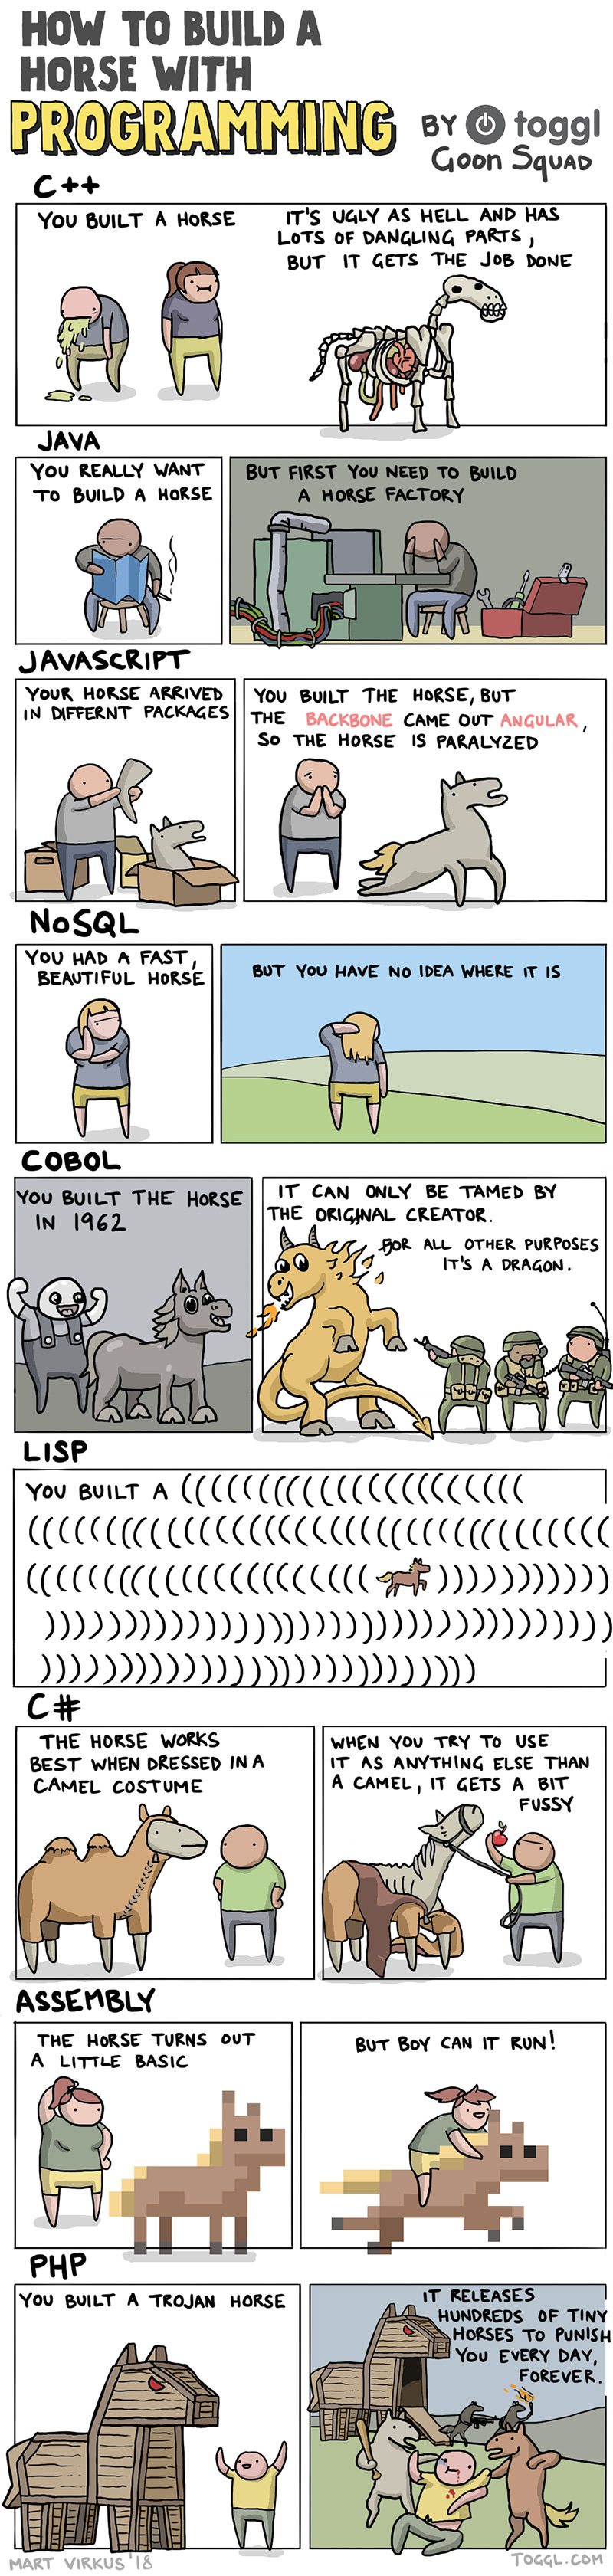 How to build a horse with programming comic toggl blog for How to build a blog